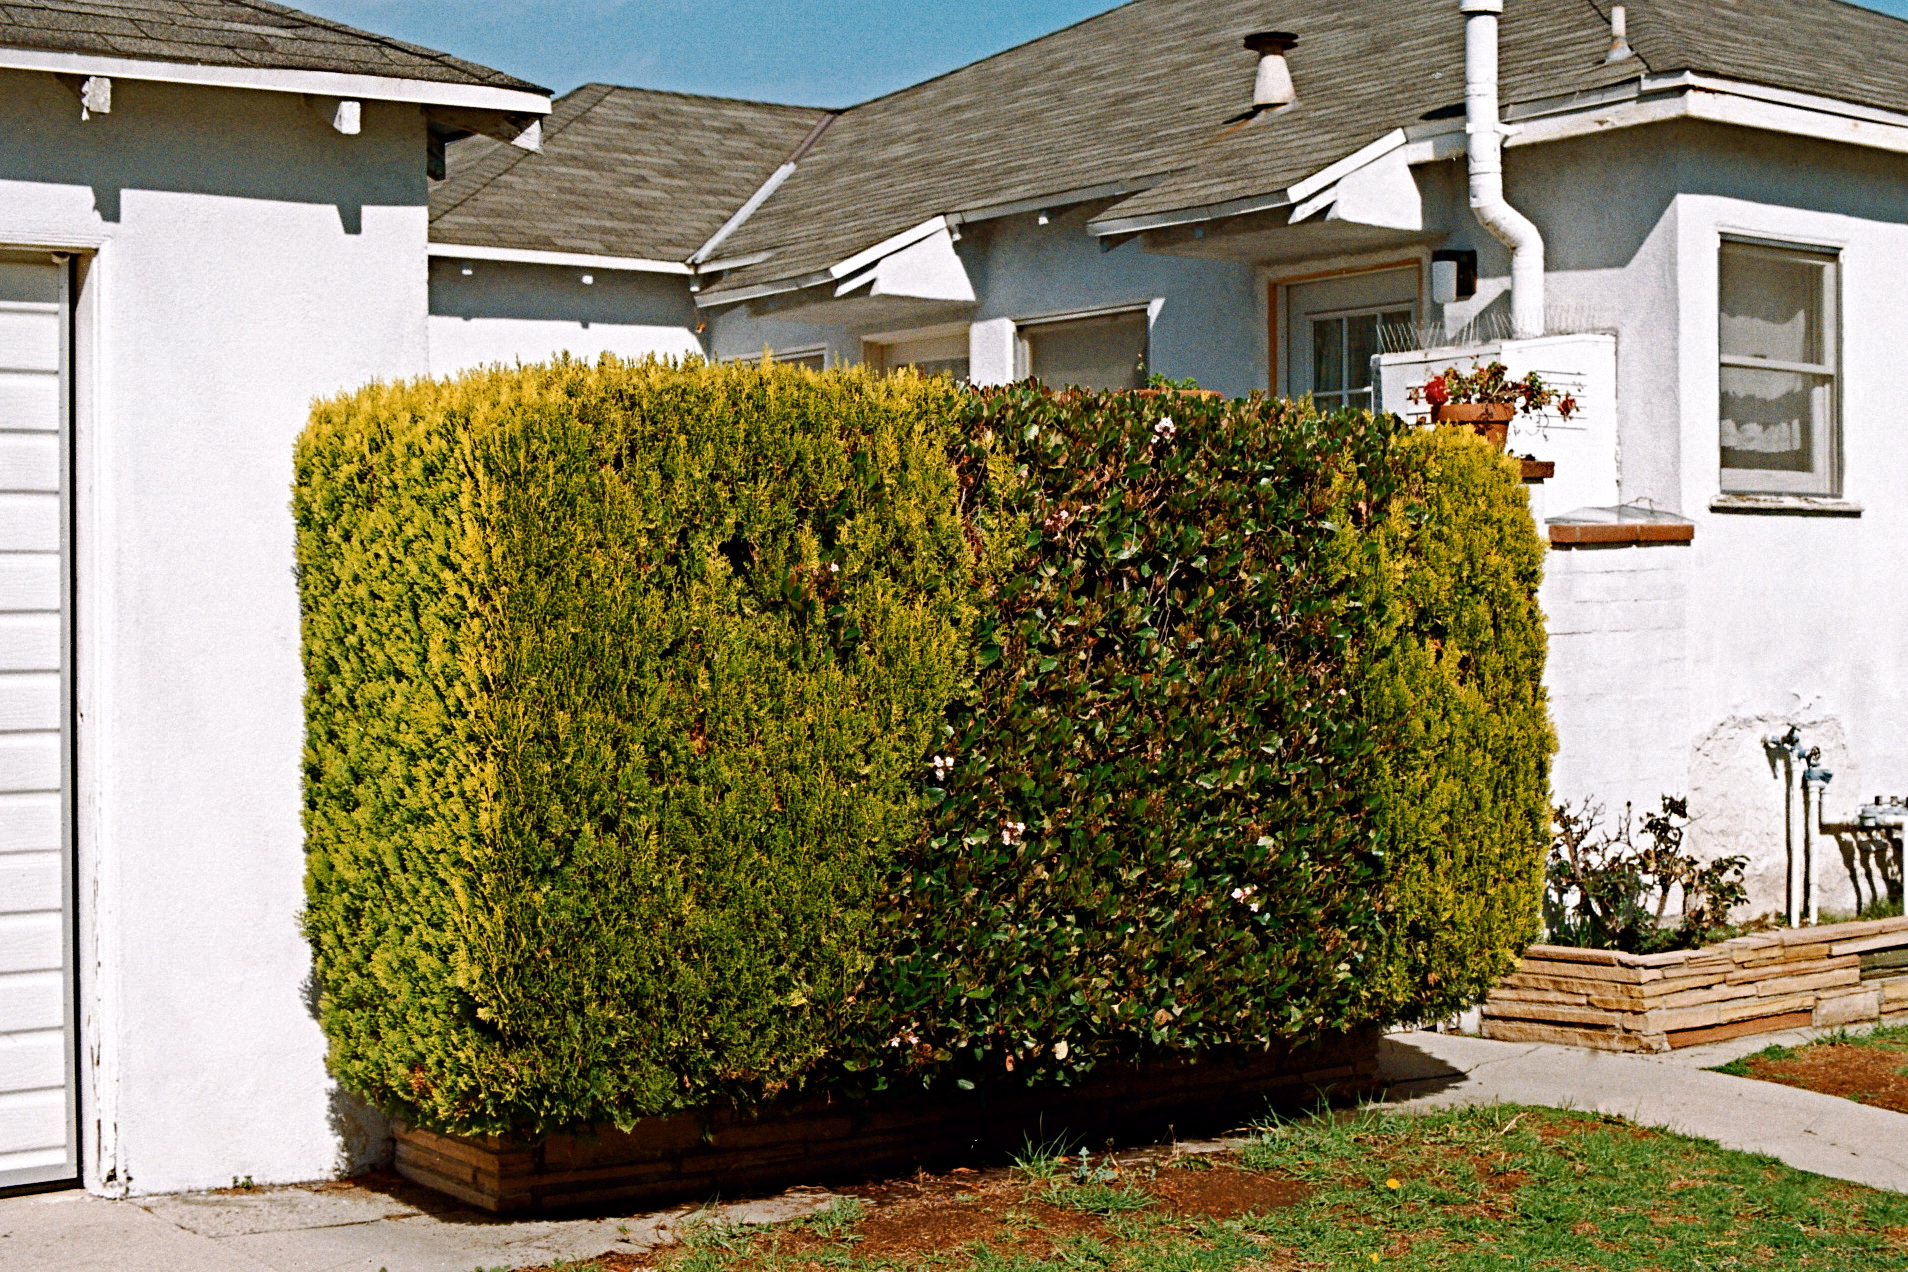 Blending Bushes | L.A. CA | 2009